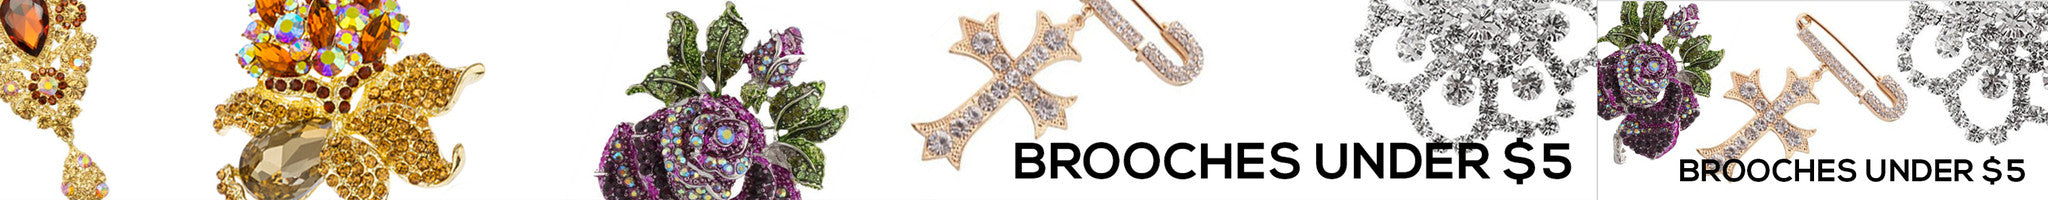 Brooches Under $5